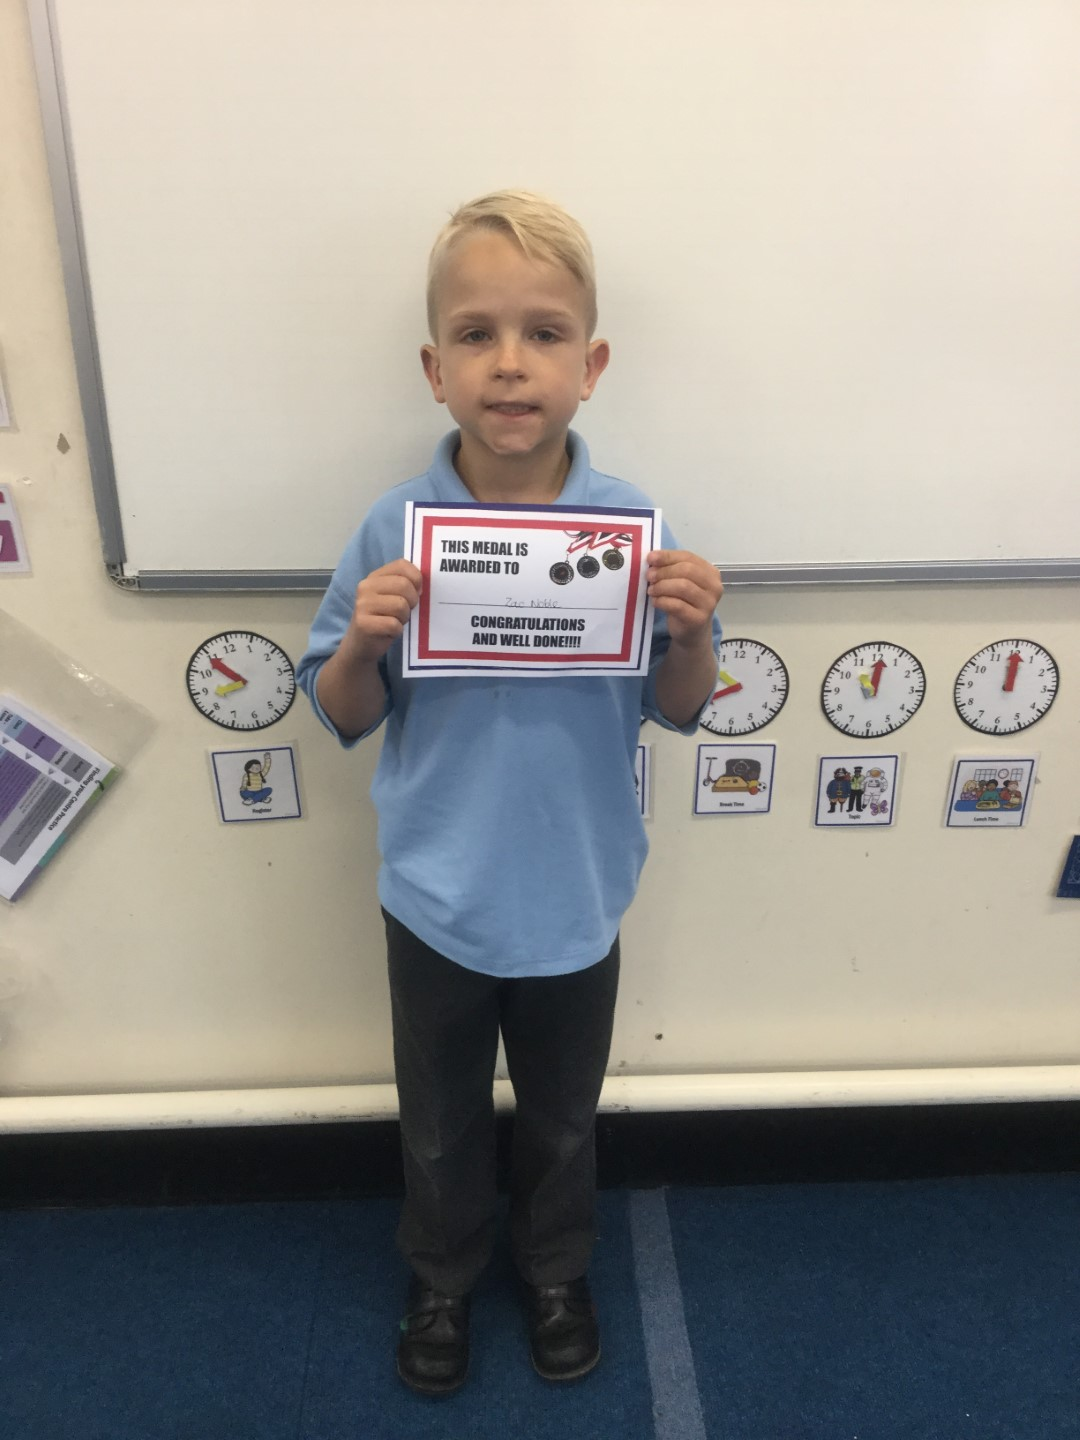 Our 'Champion of the Week' is Zac, who has been listening carefully during lessons and confidently volunteering to share his ideas and answers with others. Well done Zac! -